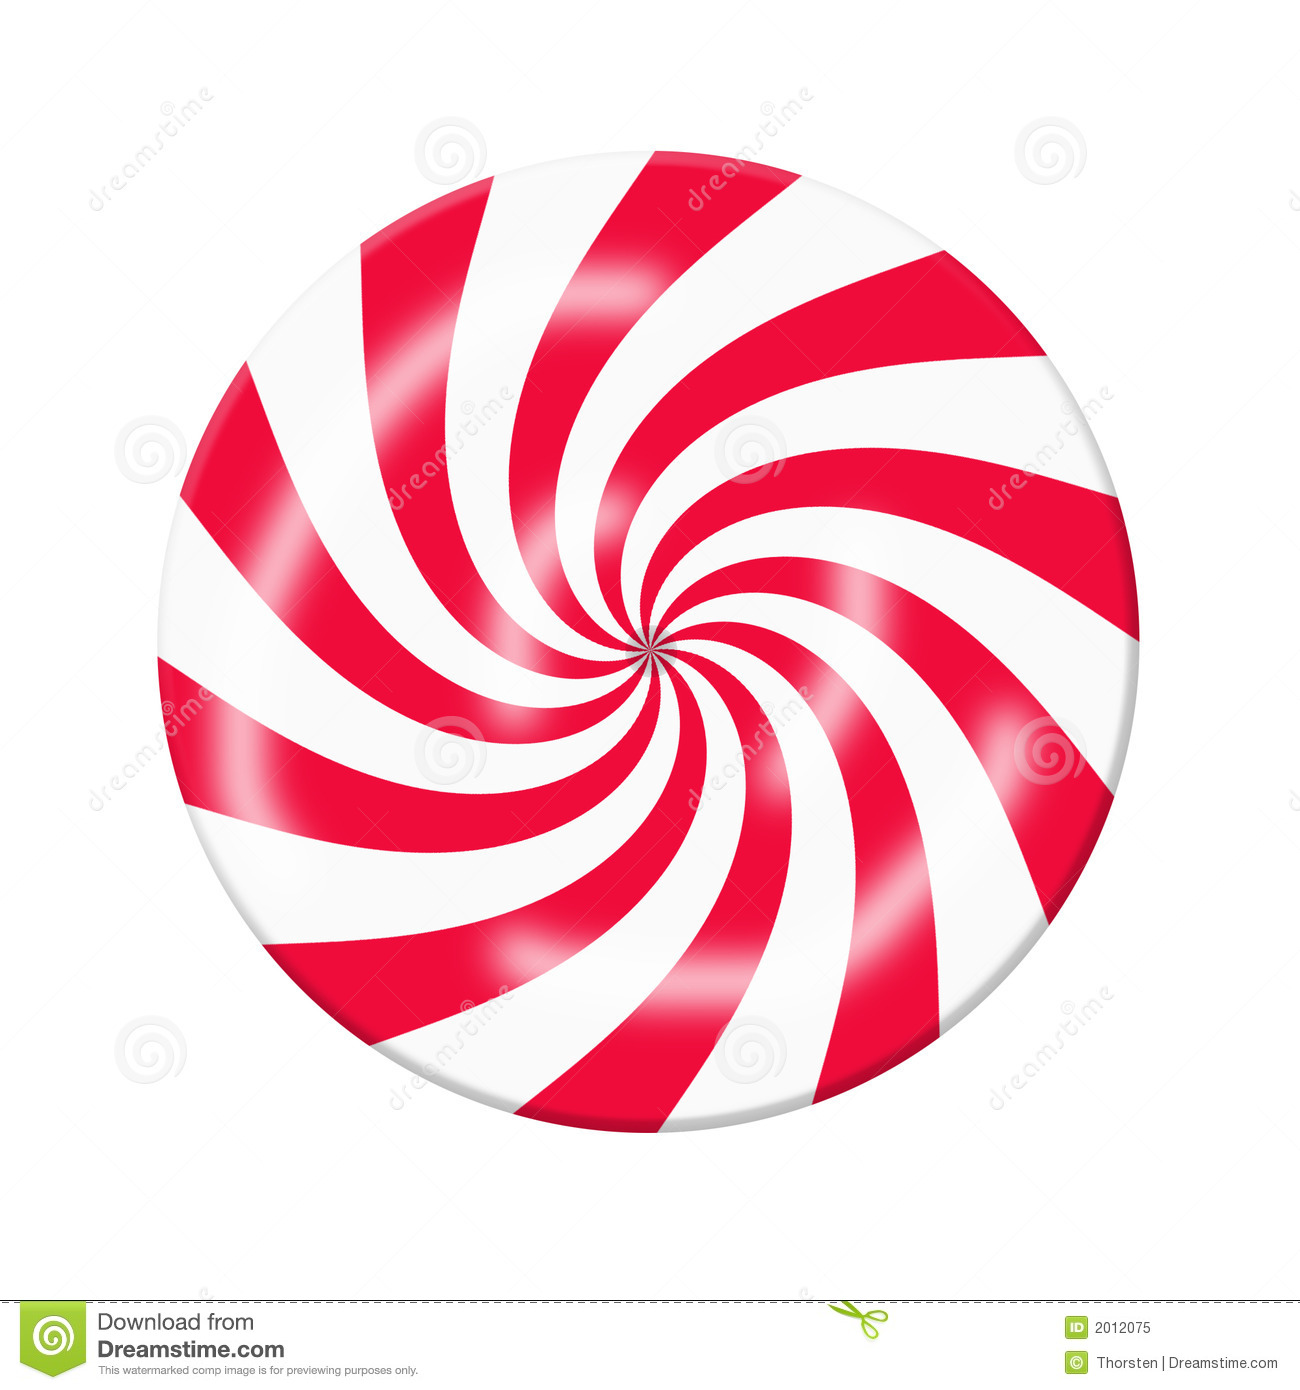 Red White Peppermint Christmas Candy, Graphic, On A White Background.